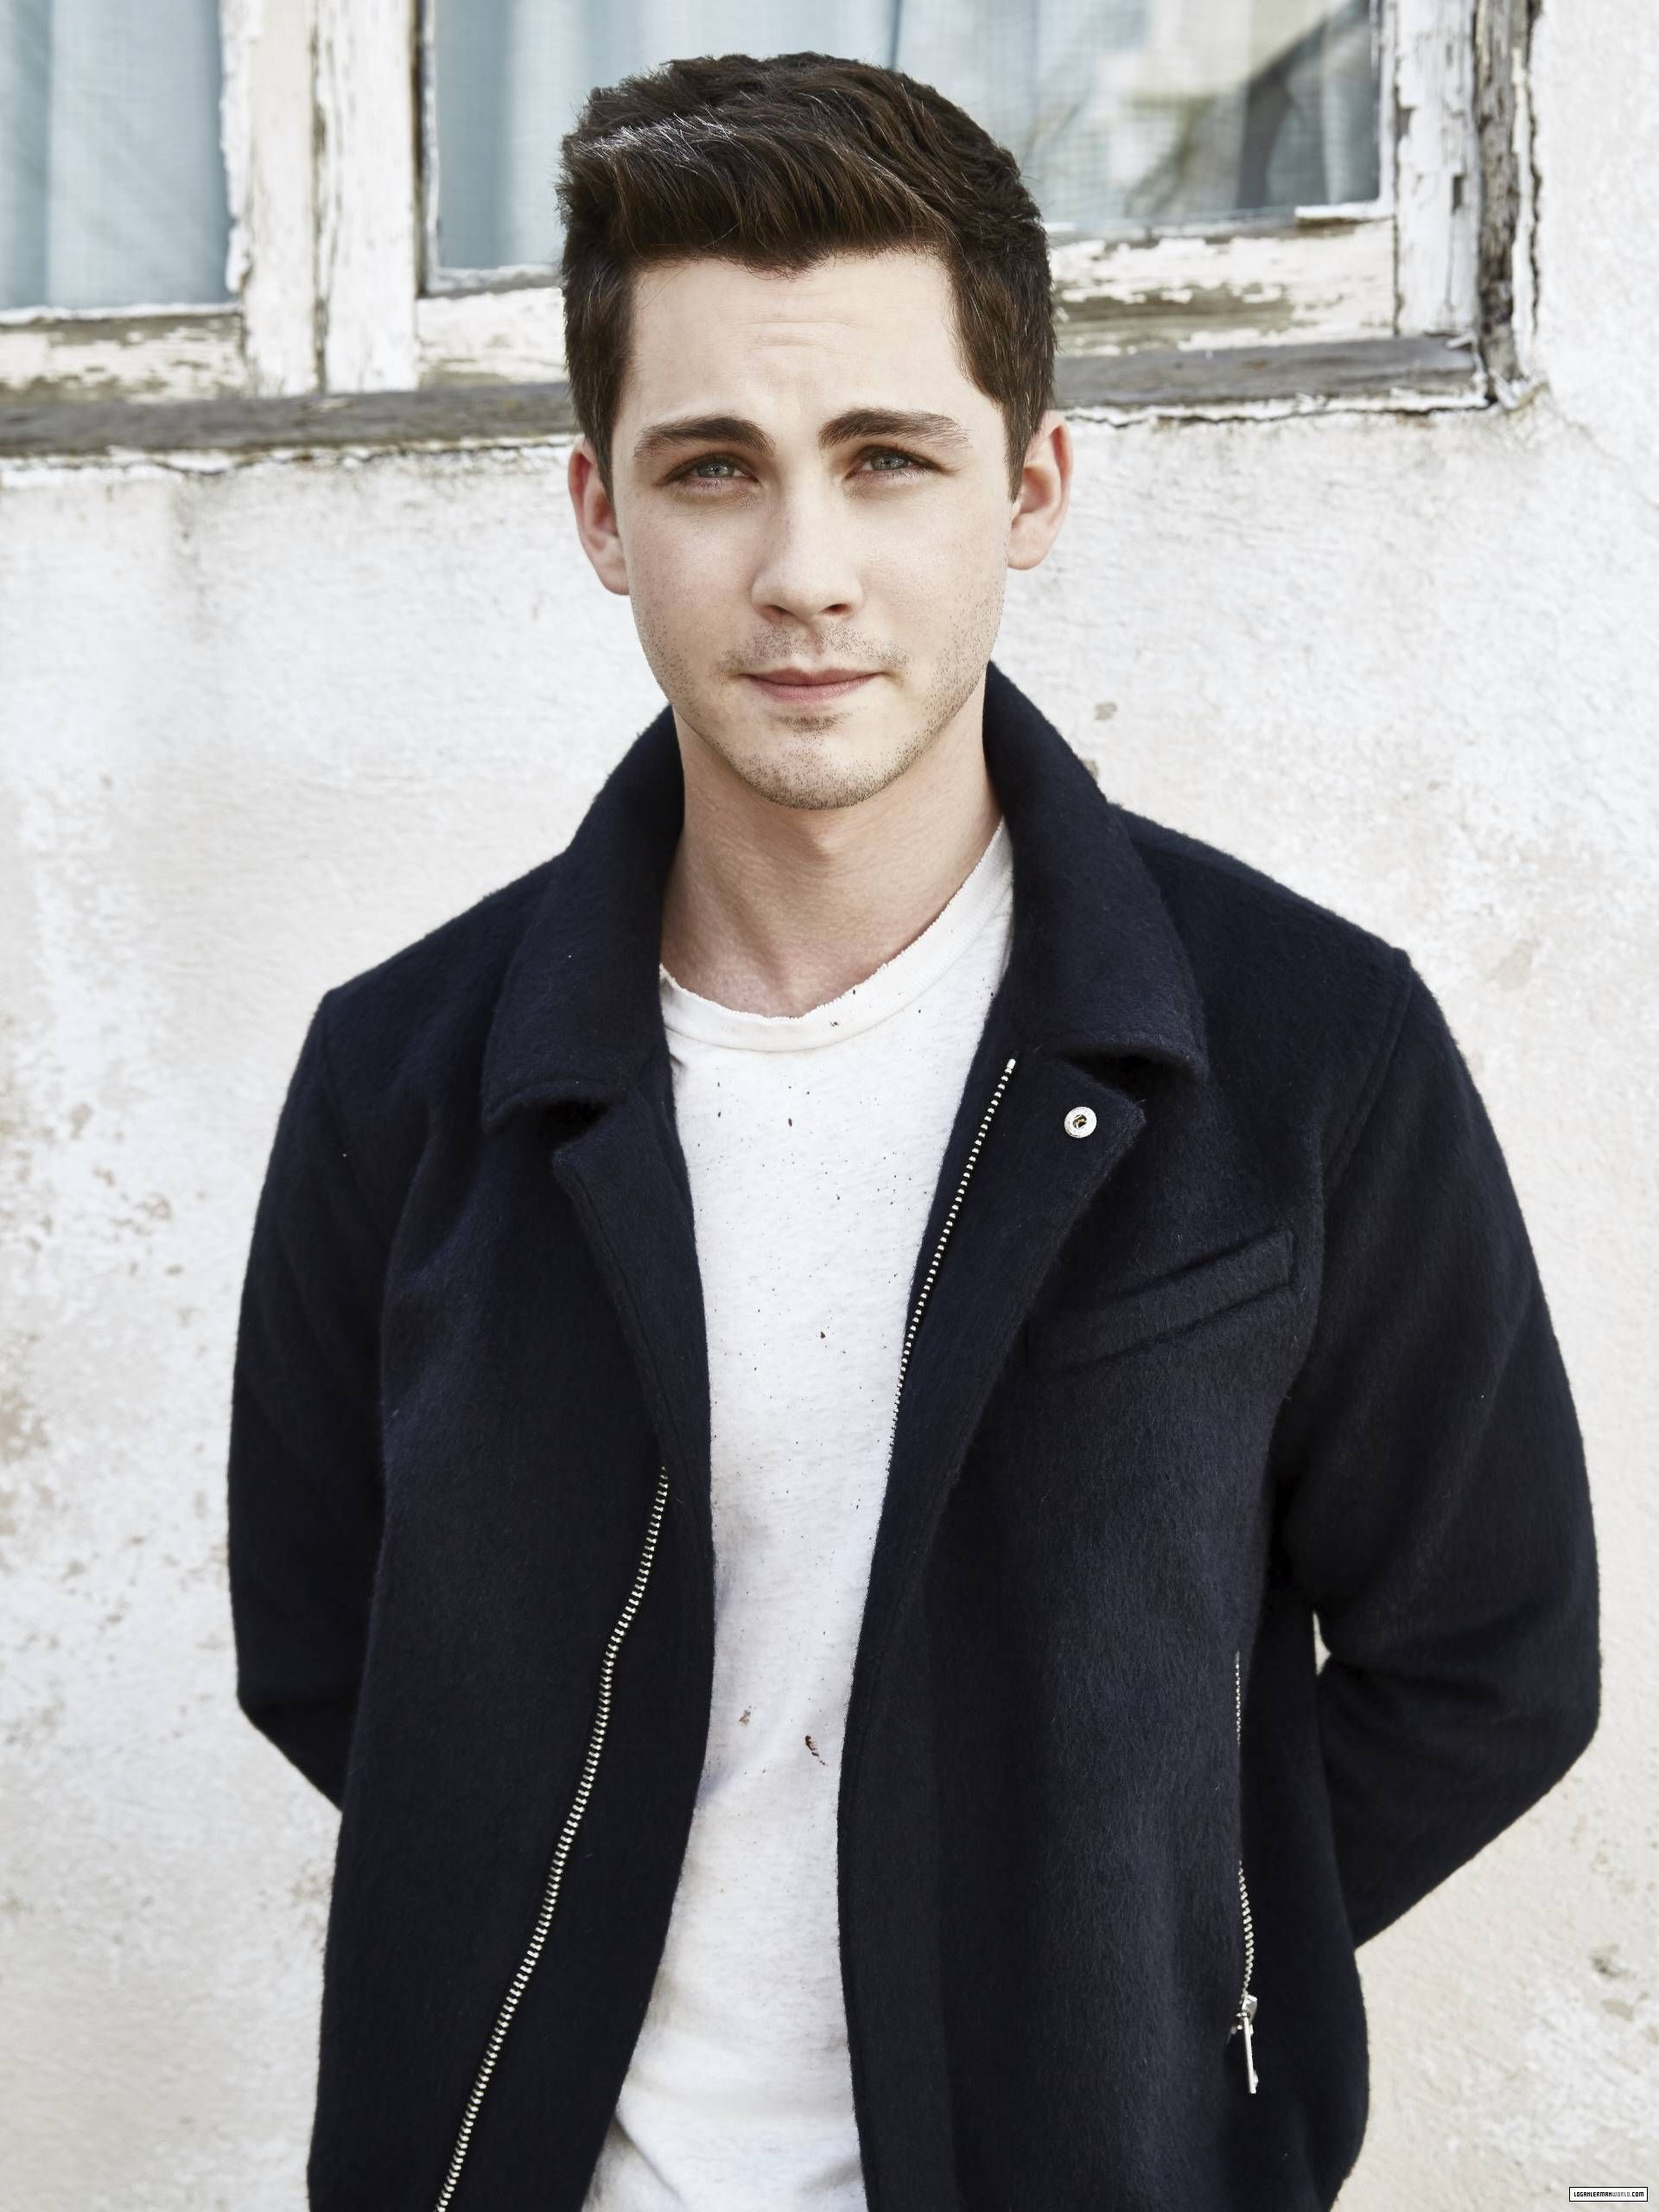 logan lerman tumblr giflogan lerman instagram, logan lerman gif, logan lerman 2017, logan lerman tumblr, logan lerman vk, logan lerman photoshoot, logan lerman movies, logan lerman twitter, logan lerman gif hunt, logan lerman wiki, logan lerman fury, logan lerman wikipedia, logan lerman imdb, logan lerman insta, logan lerman tumblr gif, logan lerman site, logan lerman listal, logan lerman film, logan lerman foto, logan lerman kinopoisk